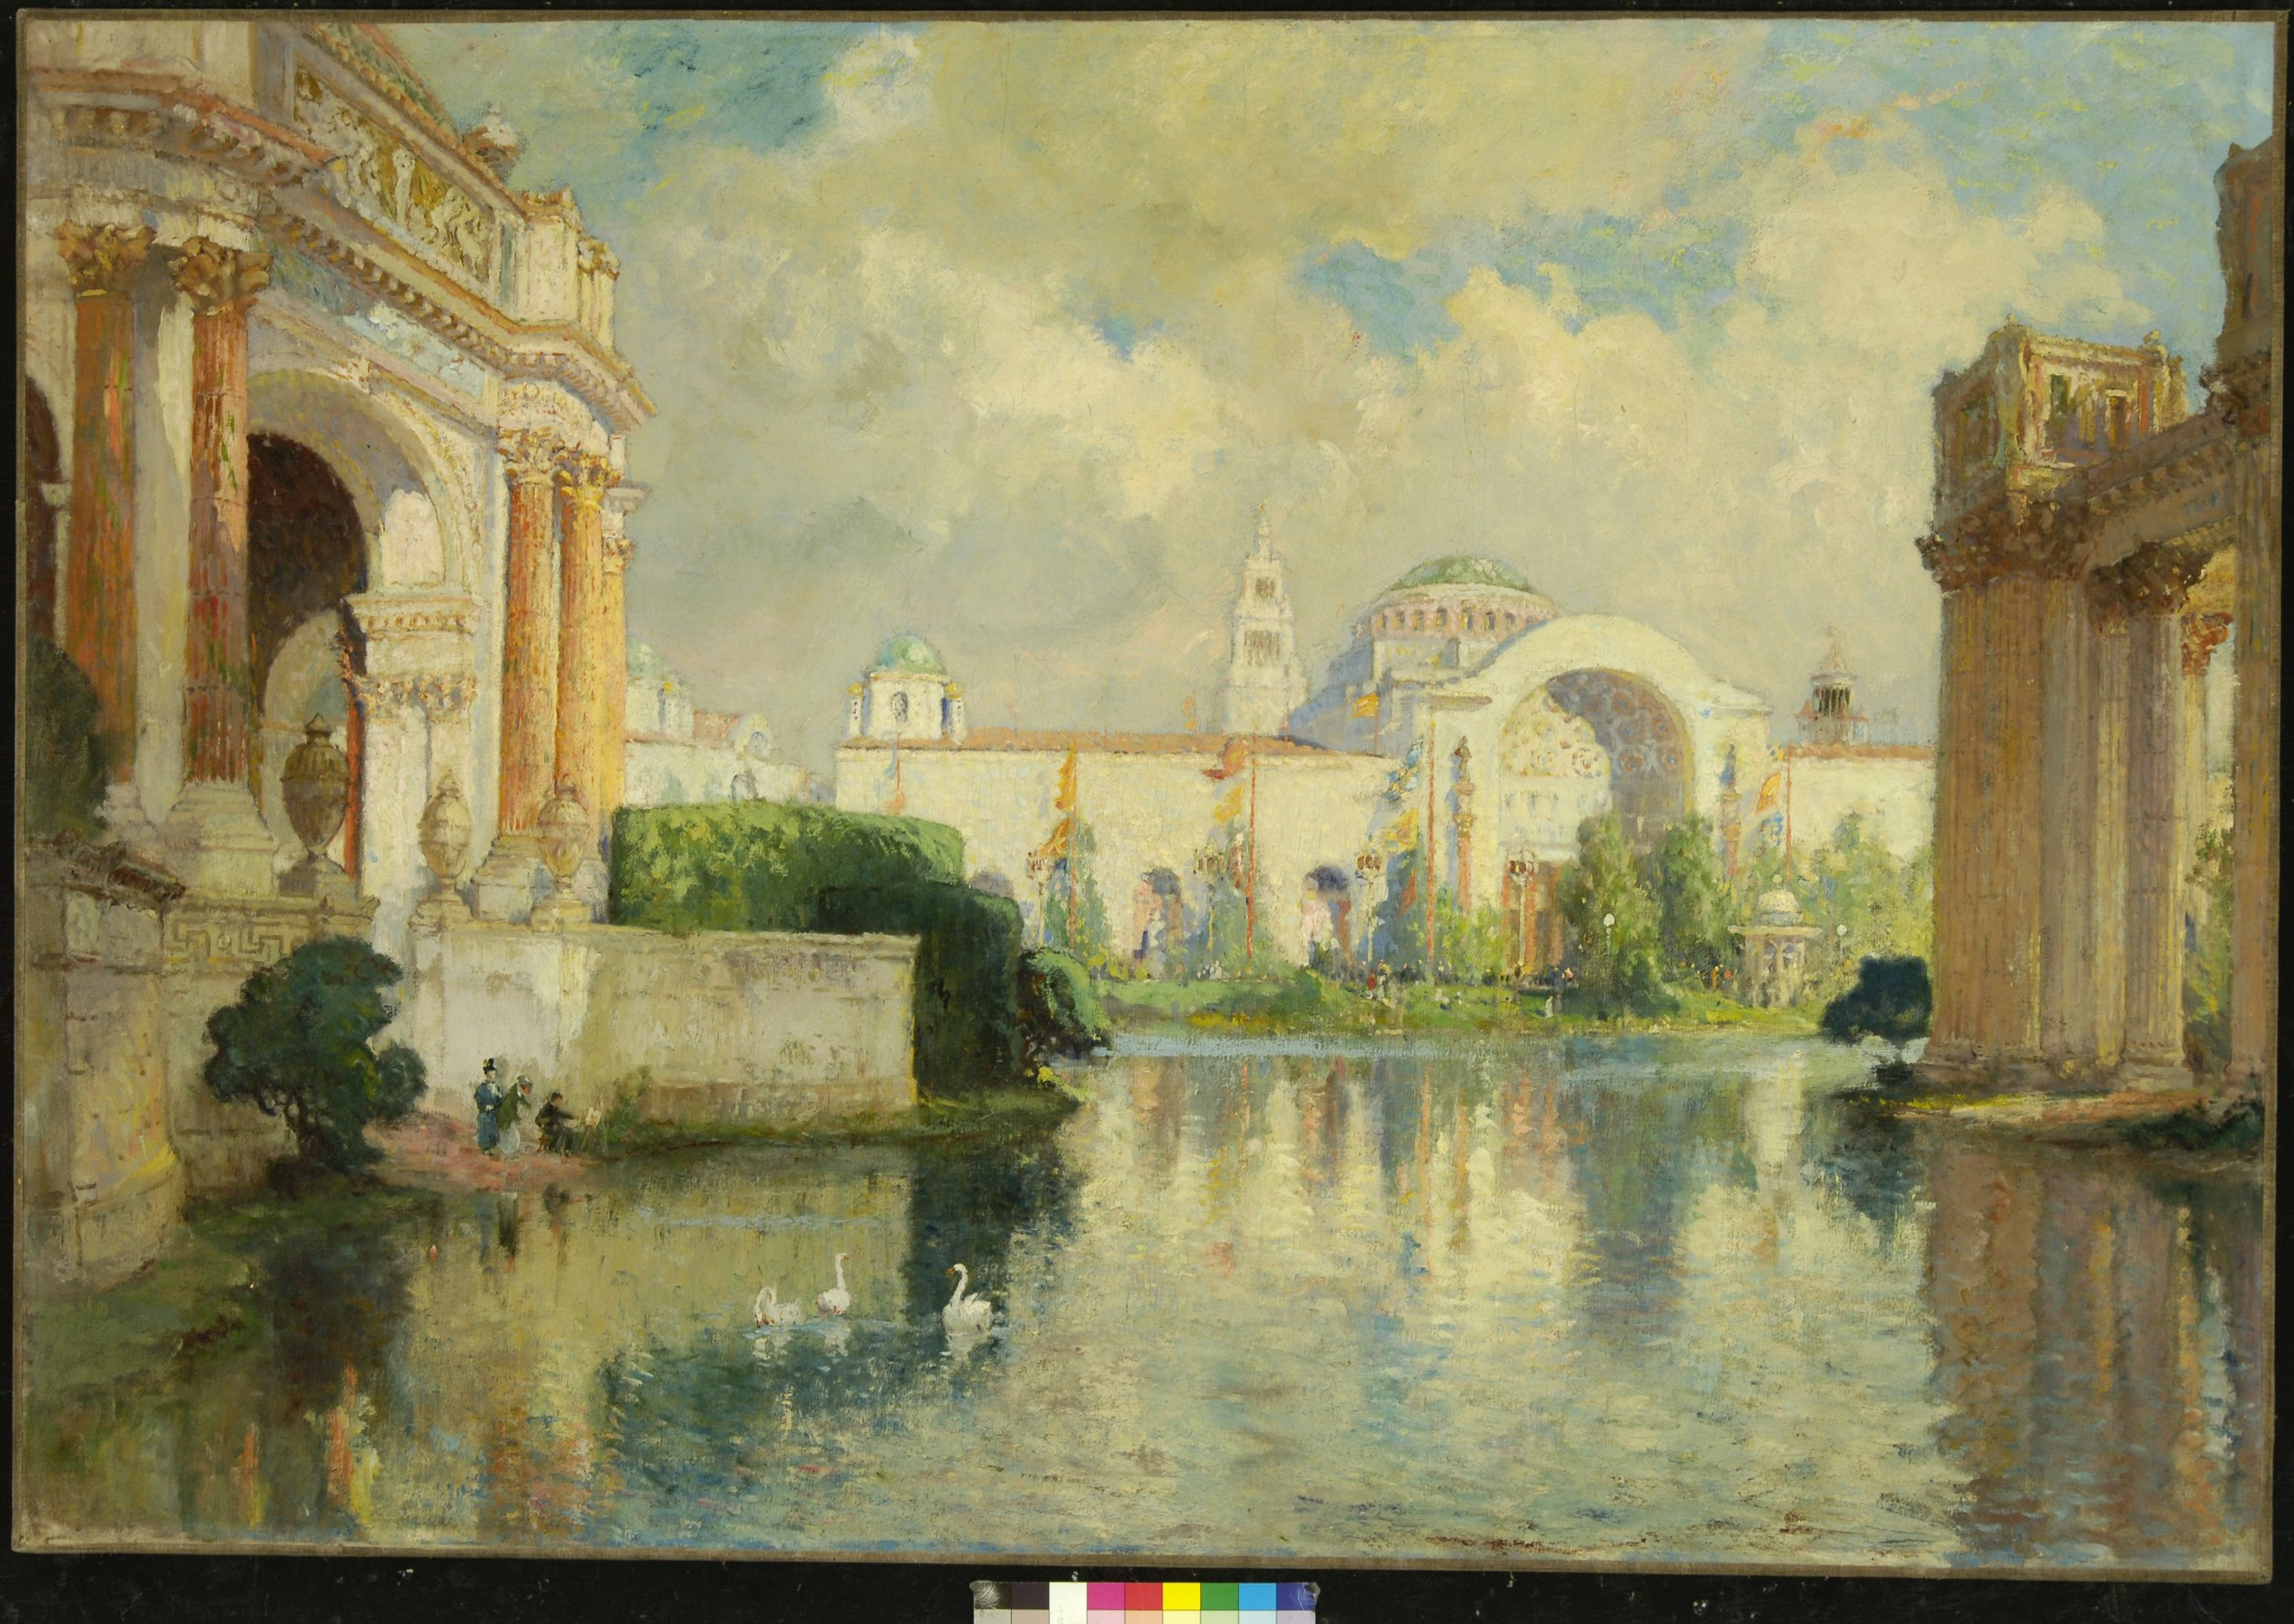 Colin Campbell COOPER   Panama-Pacific Exposition Building   c. 1915